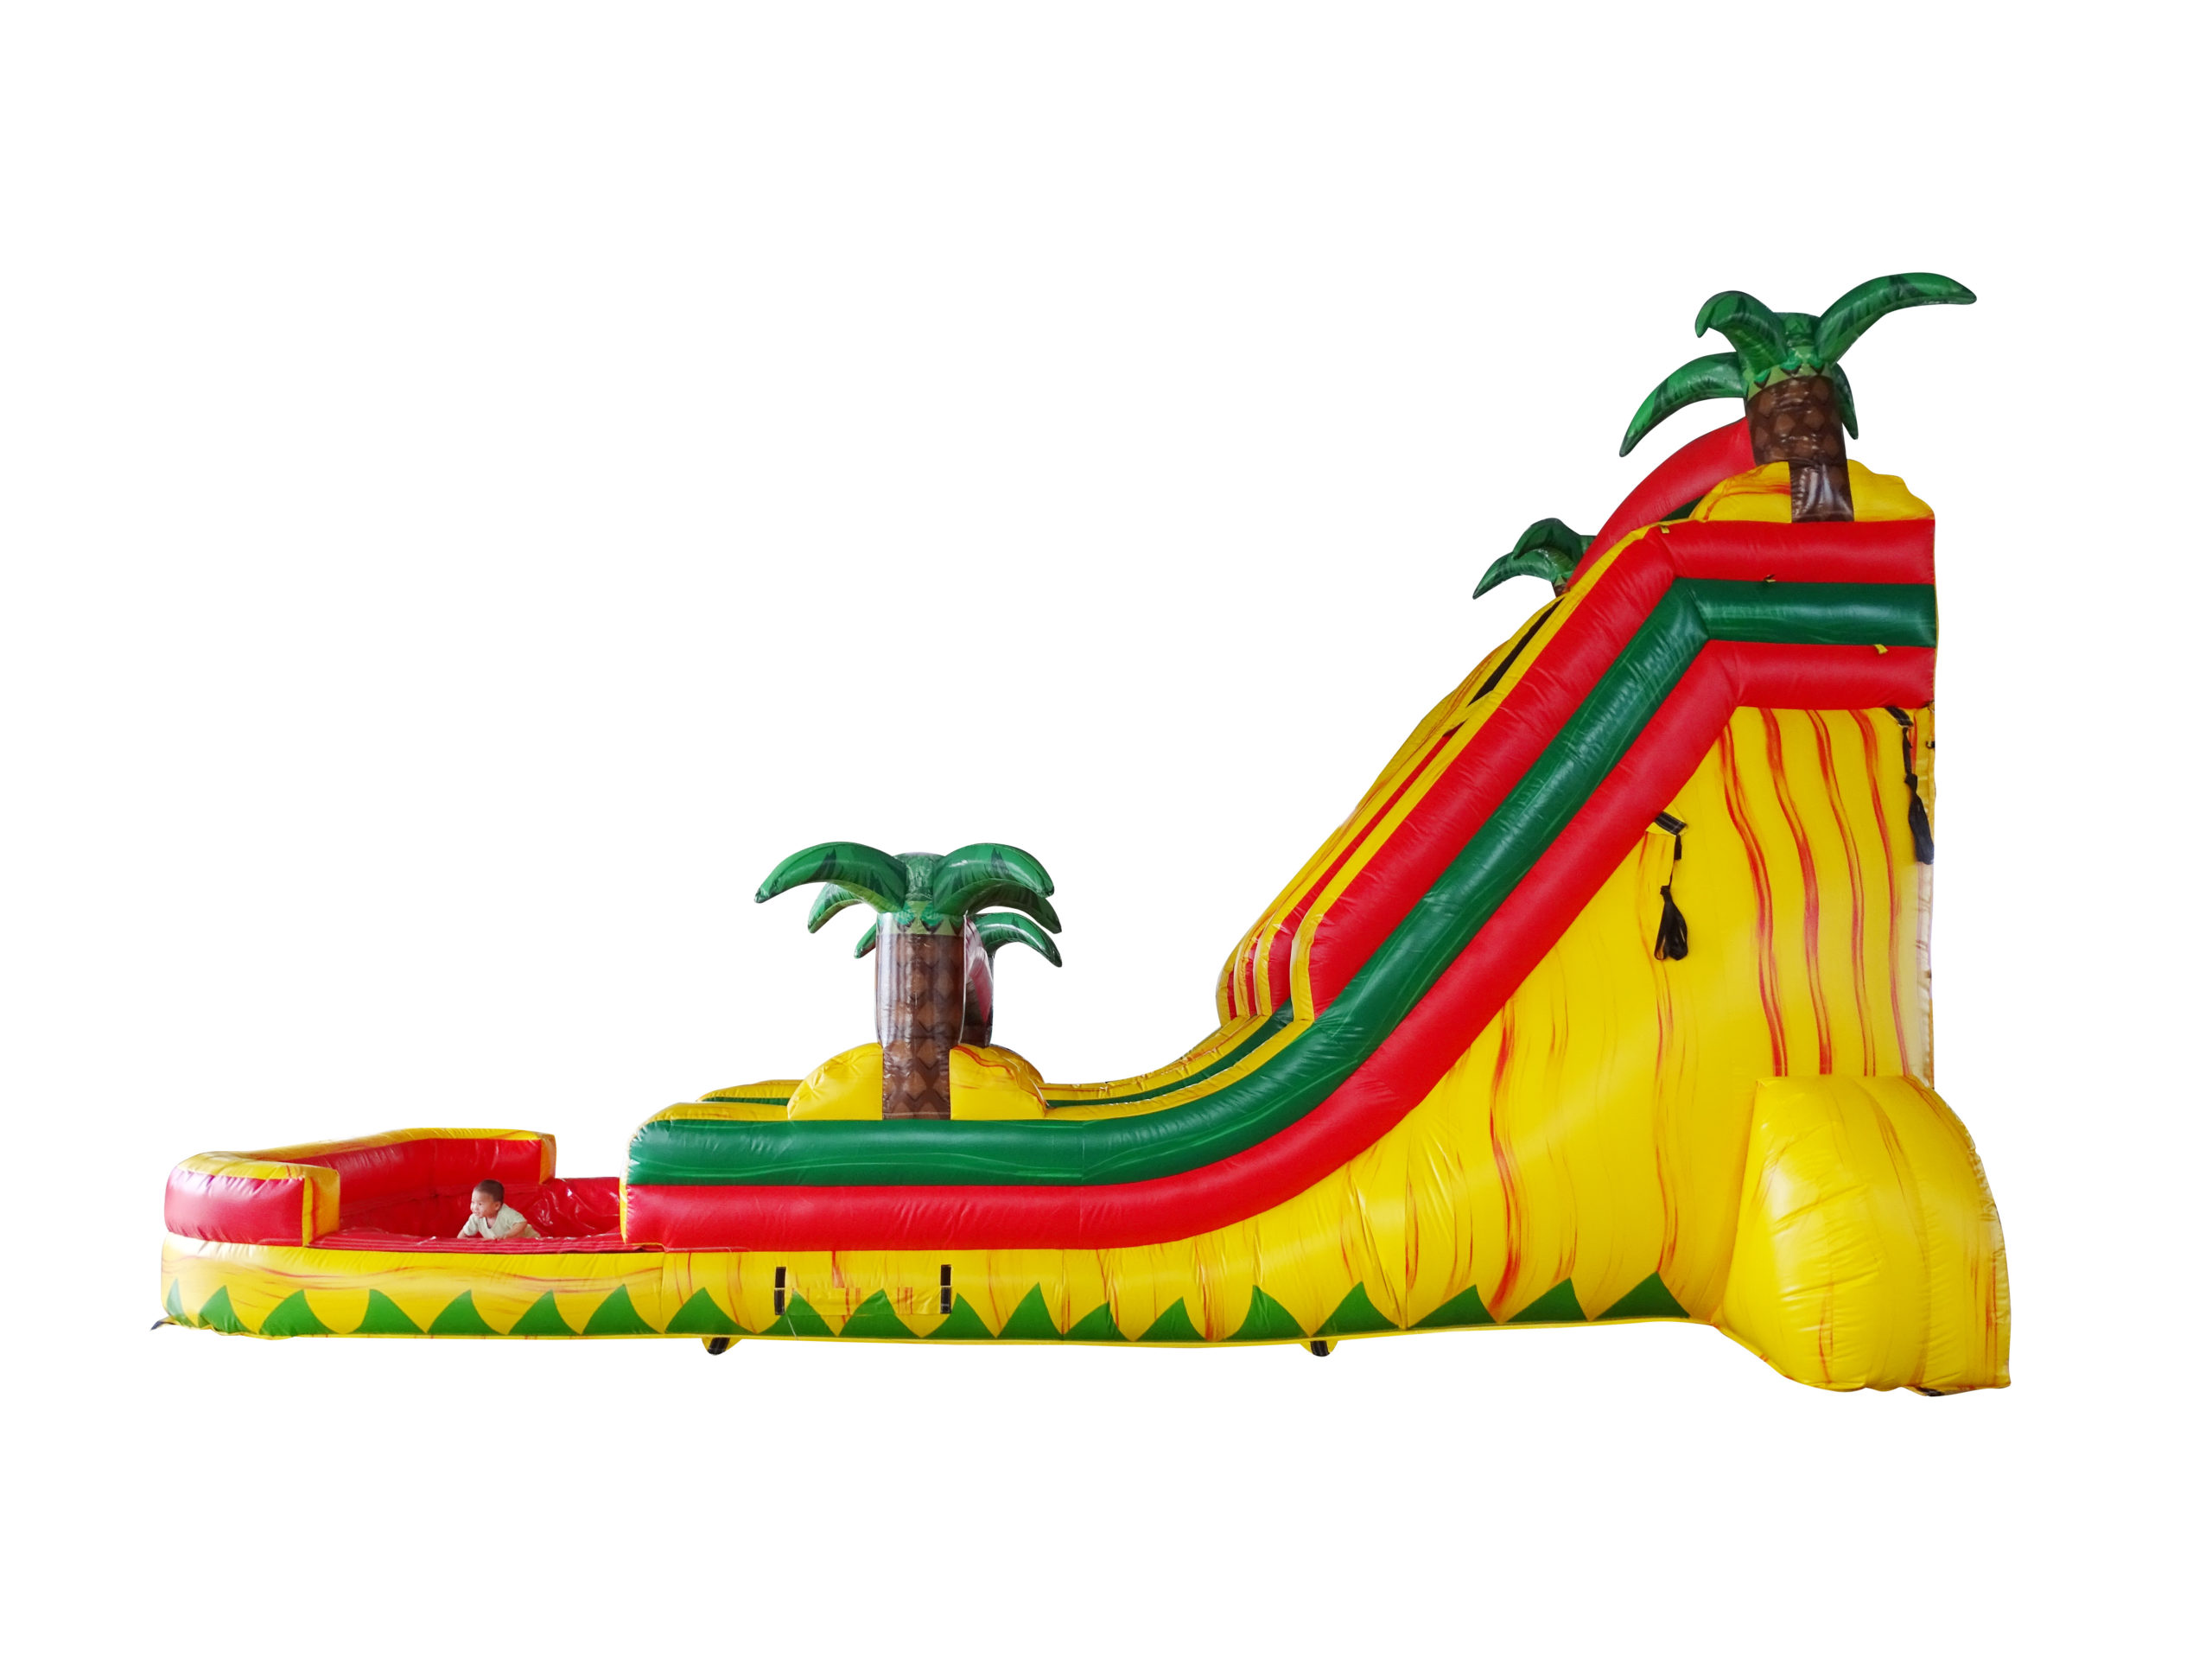 18ft-Rasta-Splash-2-2-scaled